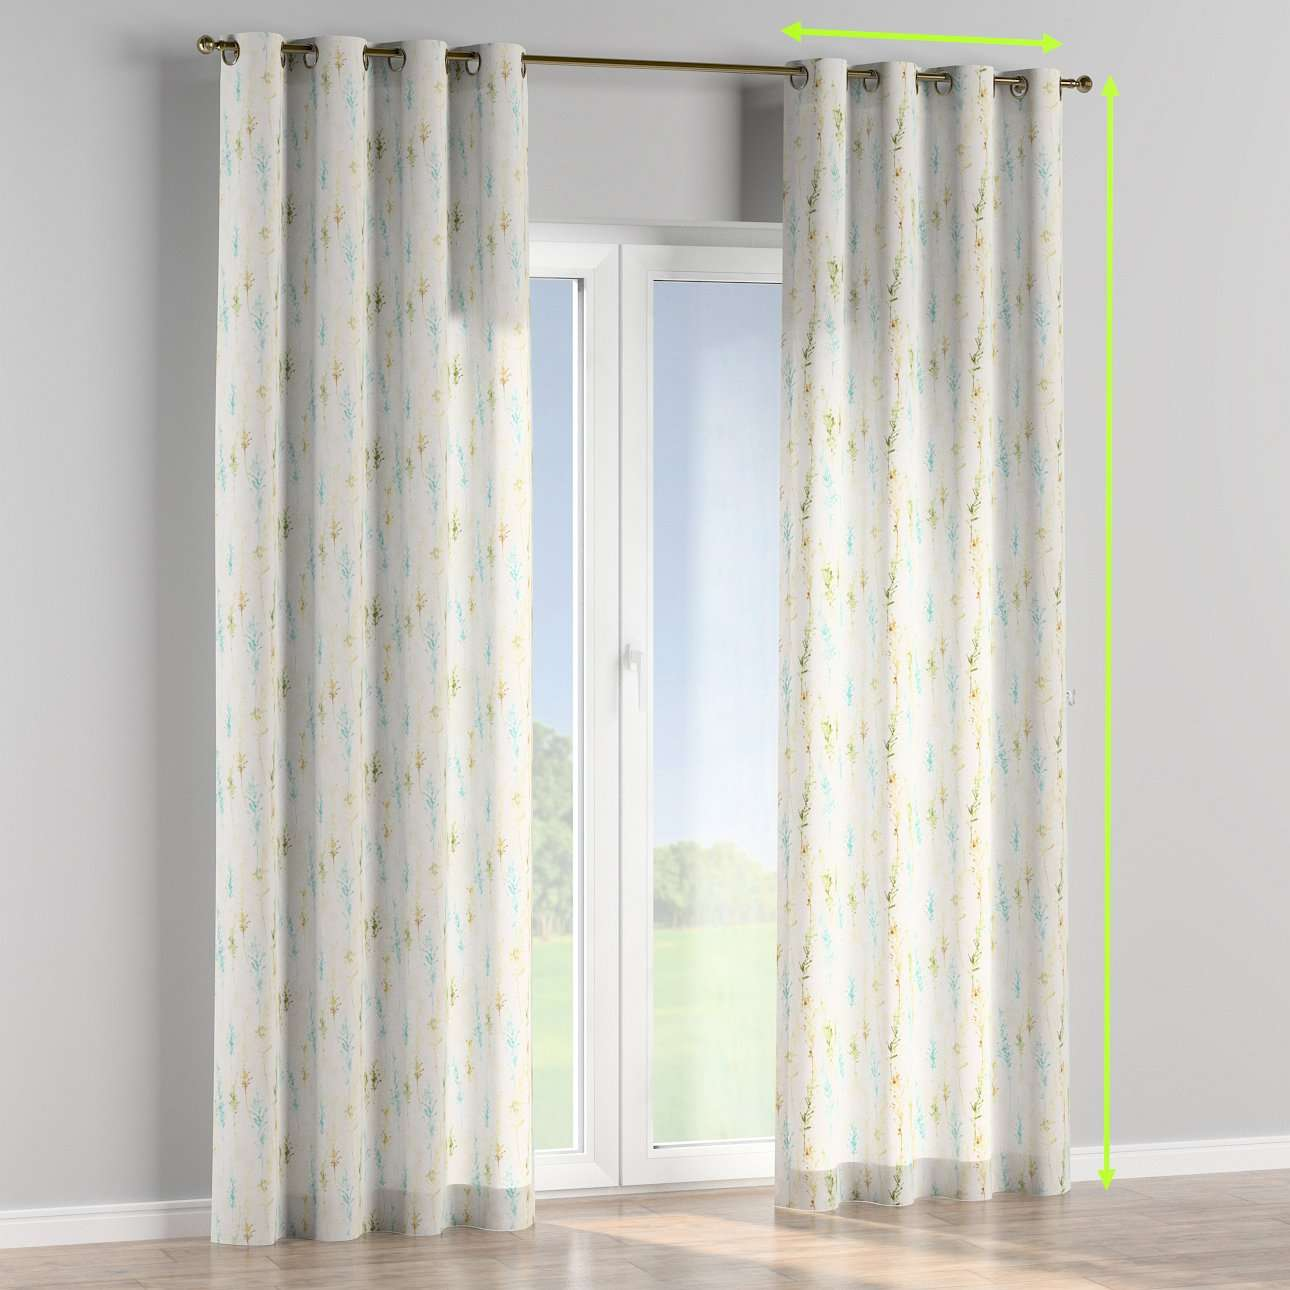 Eyelet curtains in collection Acapulco, fabric: 141-38